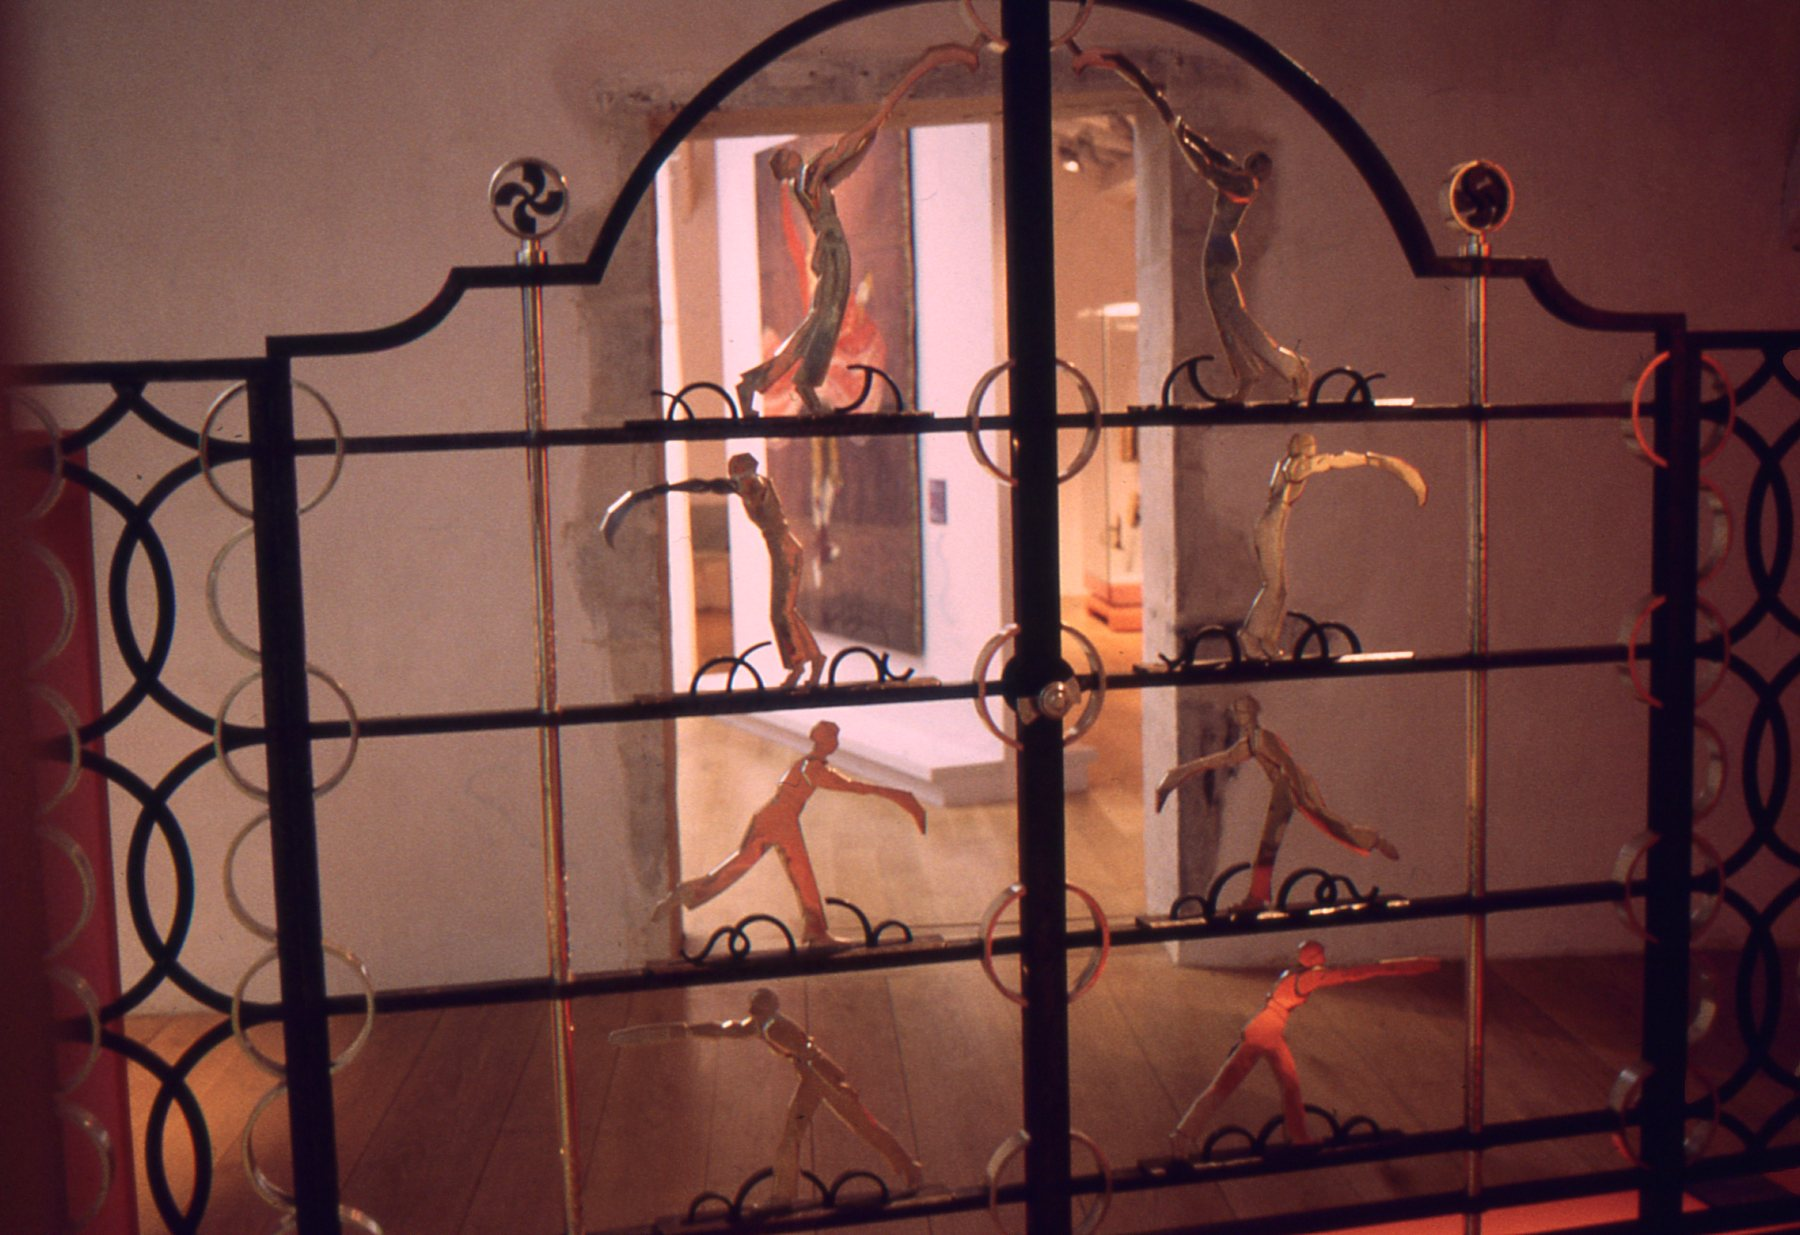 The artifacts in the Musee Basque dwell heavily on traditional Basque life, like this exquisite wrought-iron gateway that honors the sport of pelota.